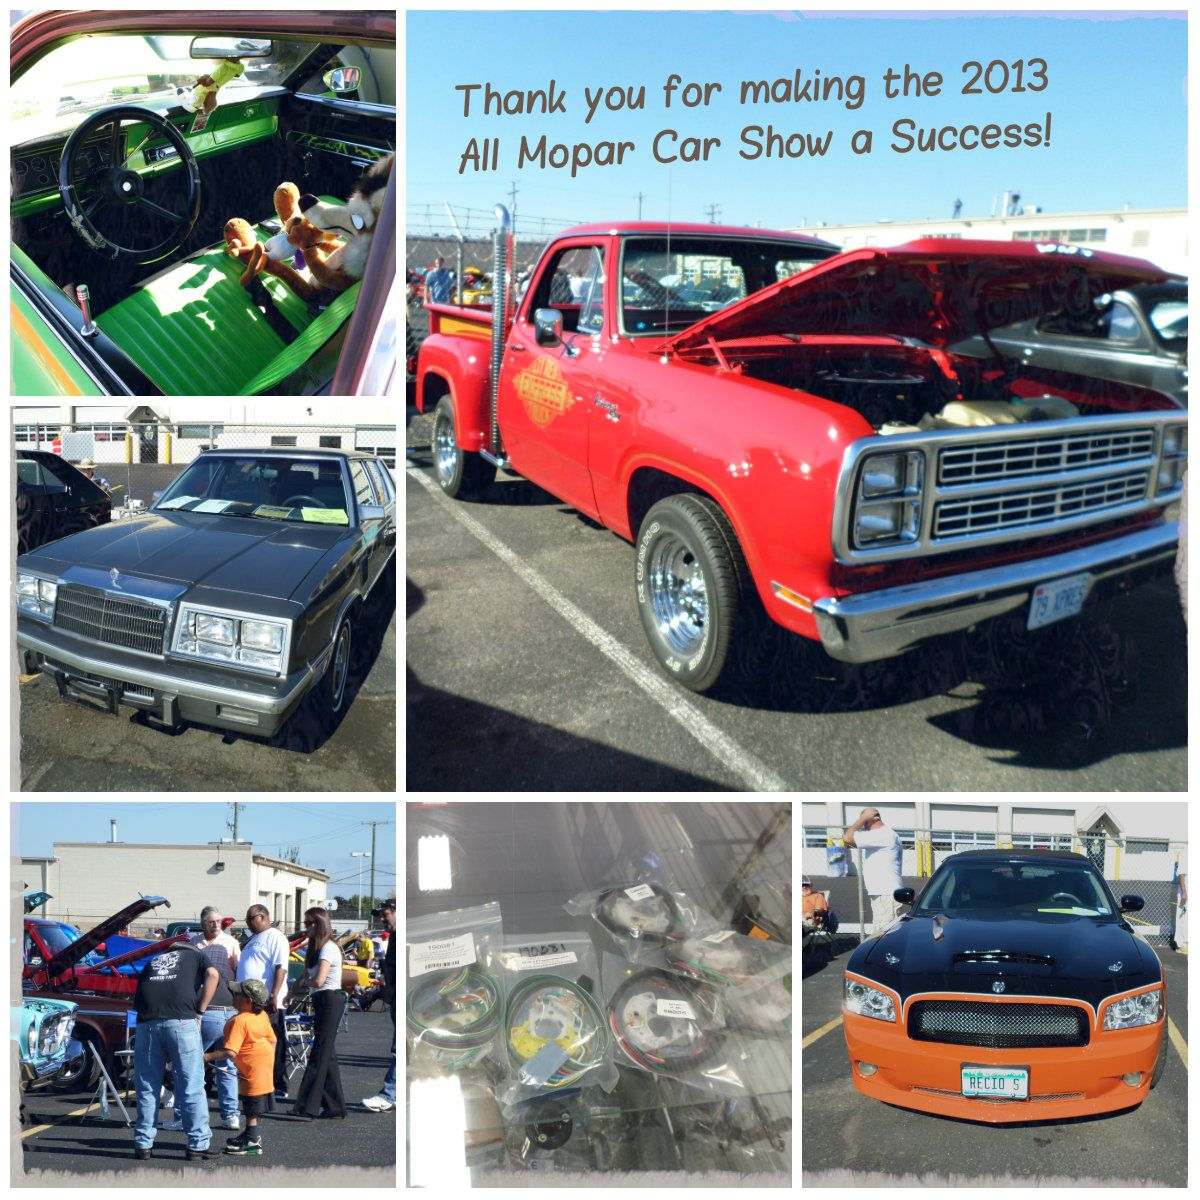 Thank You For Helping To Make Our 2013 All Mopar Car Show A